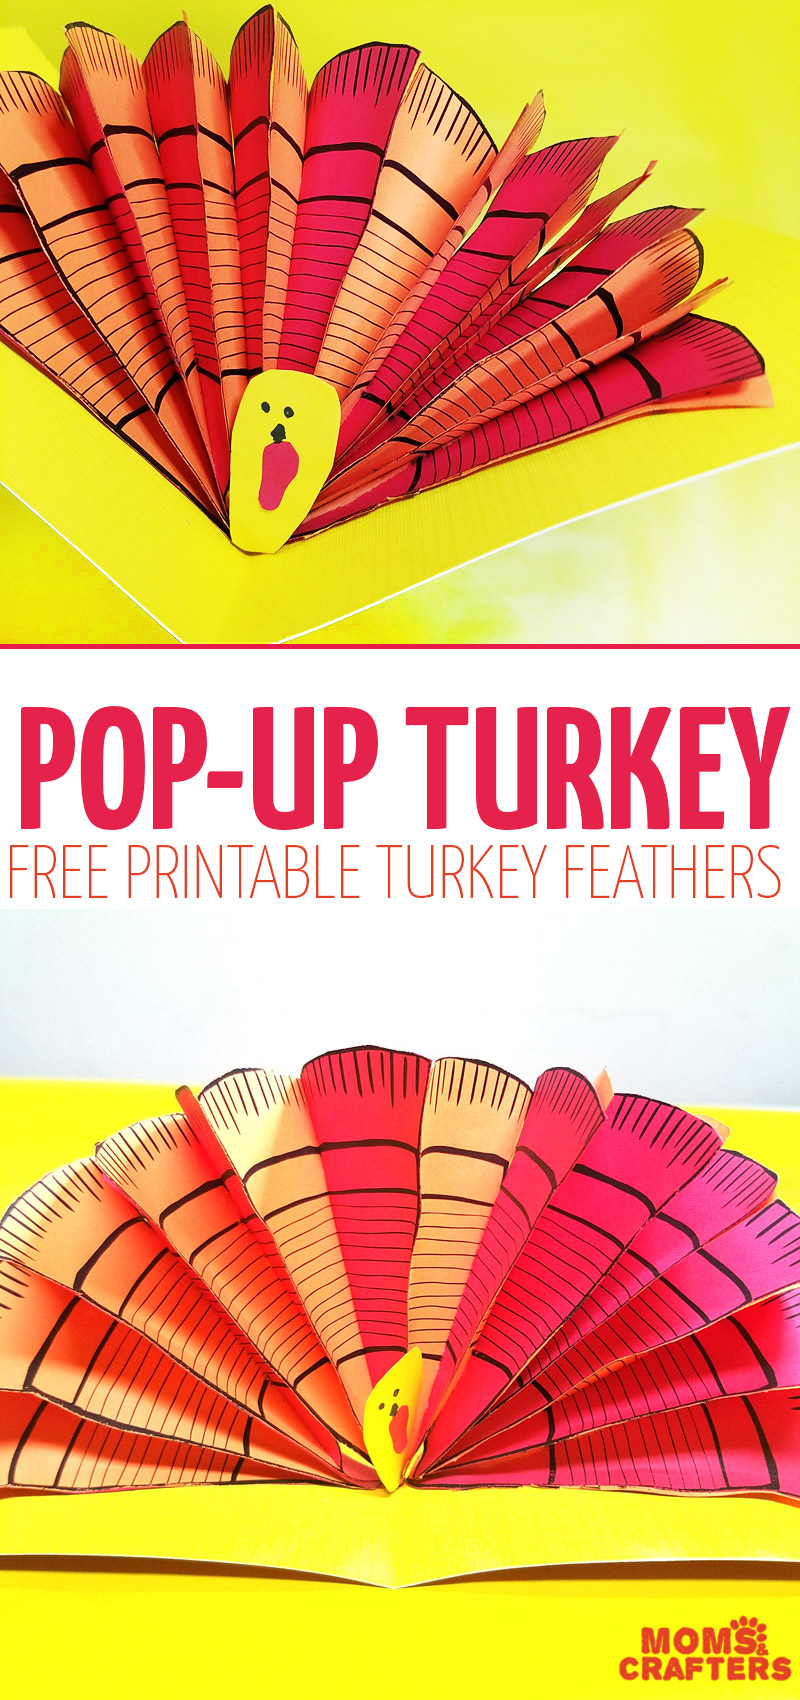 graphic relating to Turkey Feather Printable identify Pop Up Turkey Craft - cost-free printable Turkey feathers * Mothers